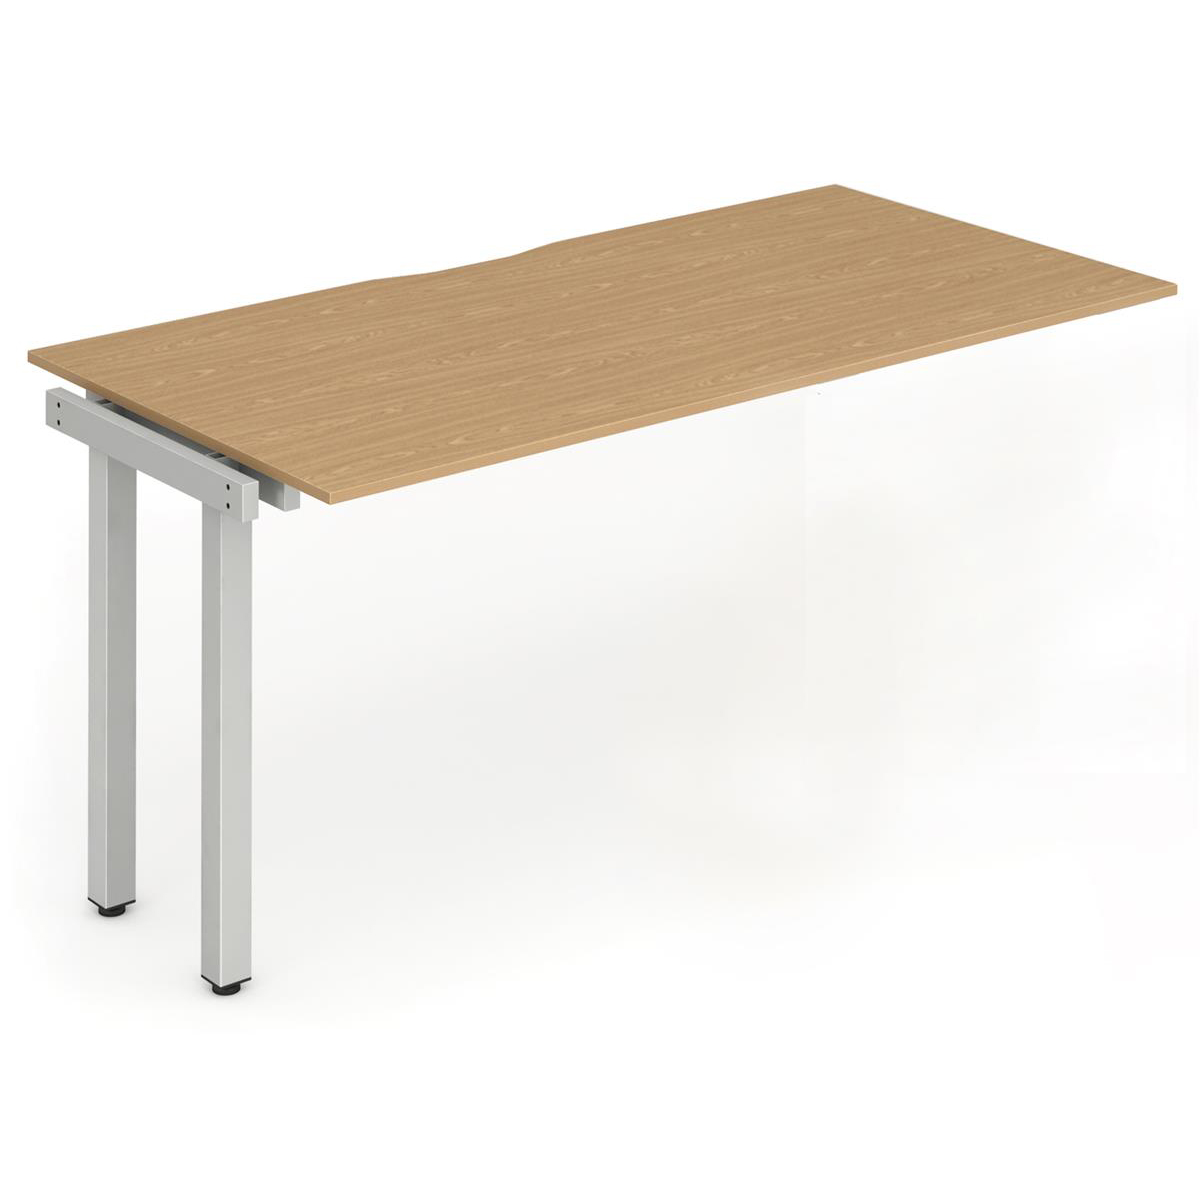 Trexus Bench Desk Single Extension Silver Leg 1200x800mm Oak Ref BE338